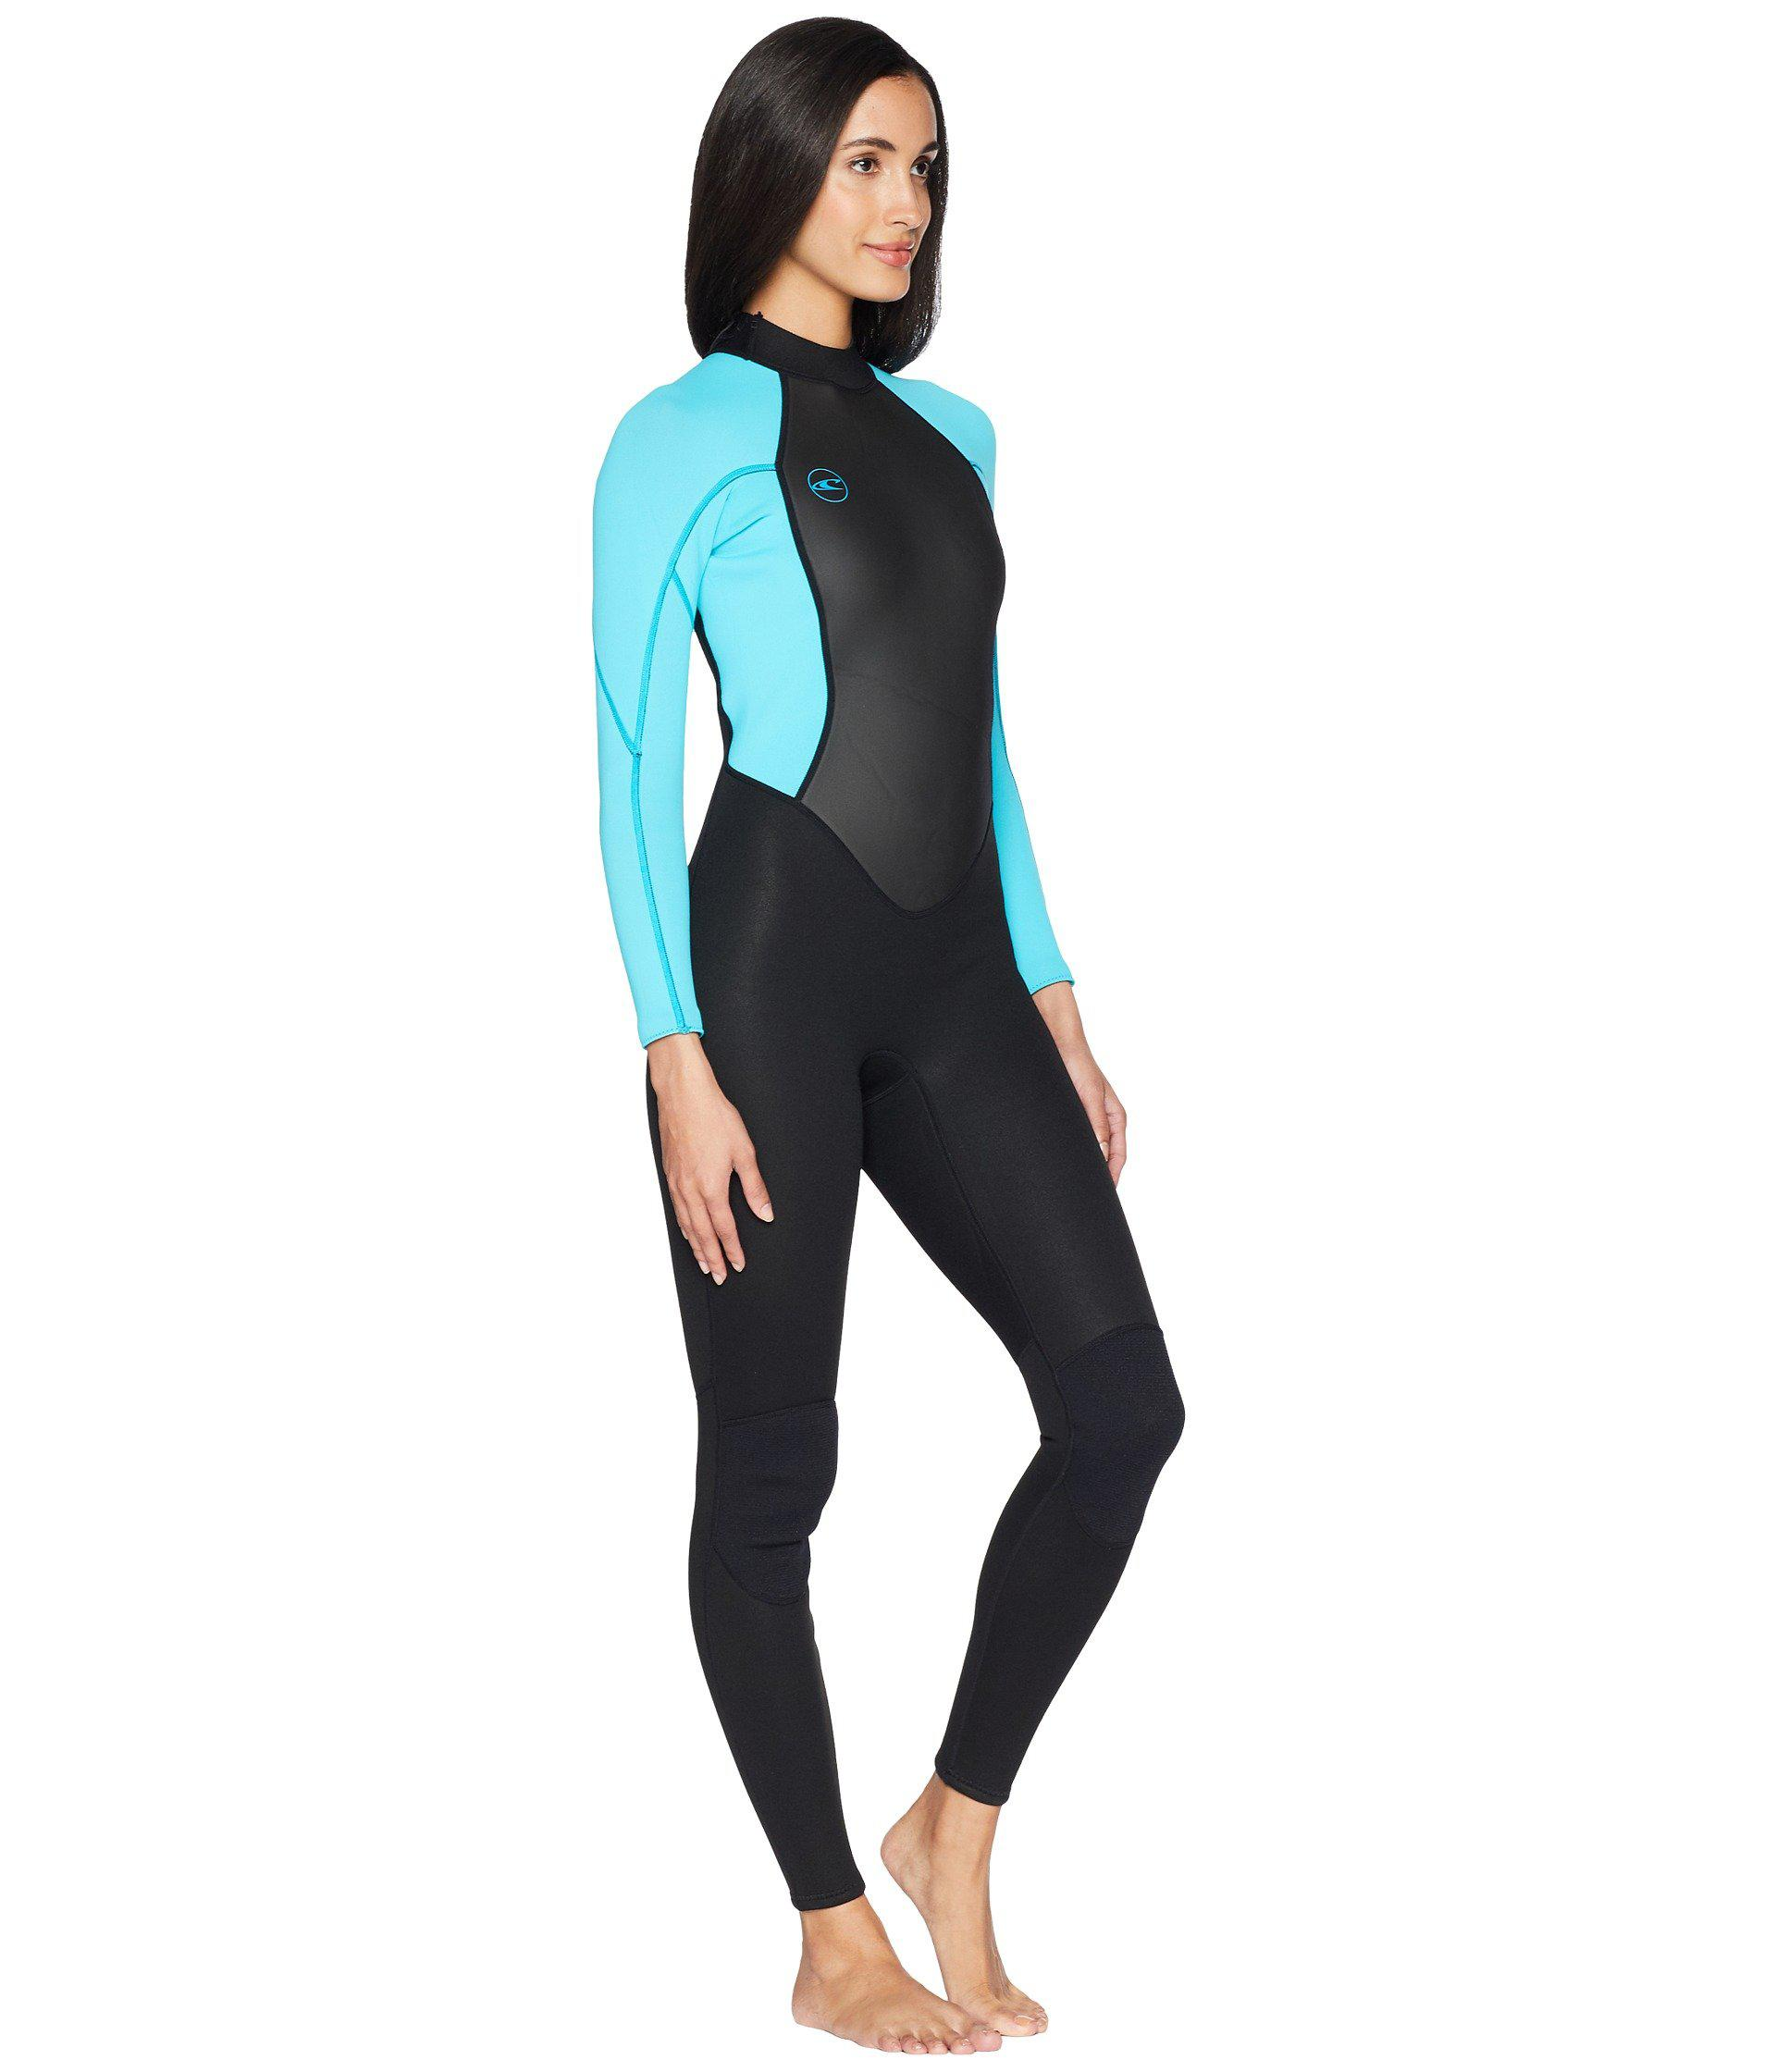 Lyst - O neill Sportswear Reactor-2 3 2 Back Zip Full (black light ... f856a4912